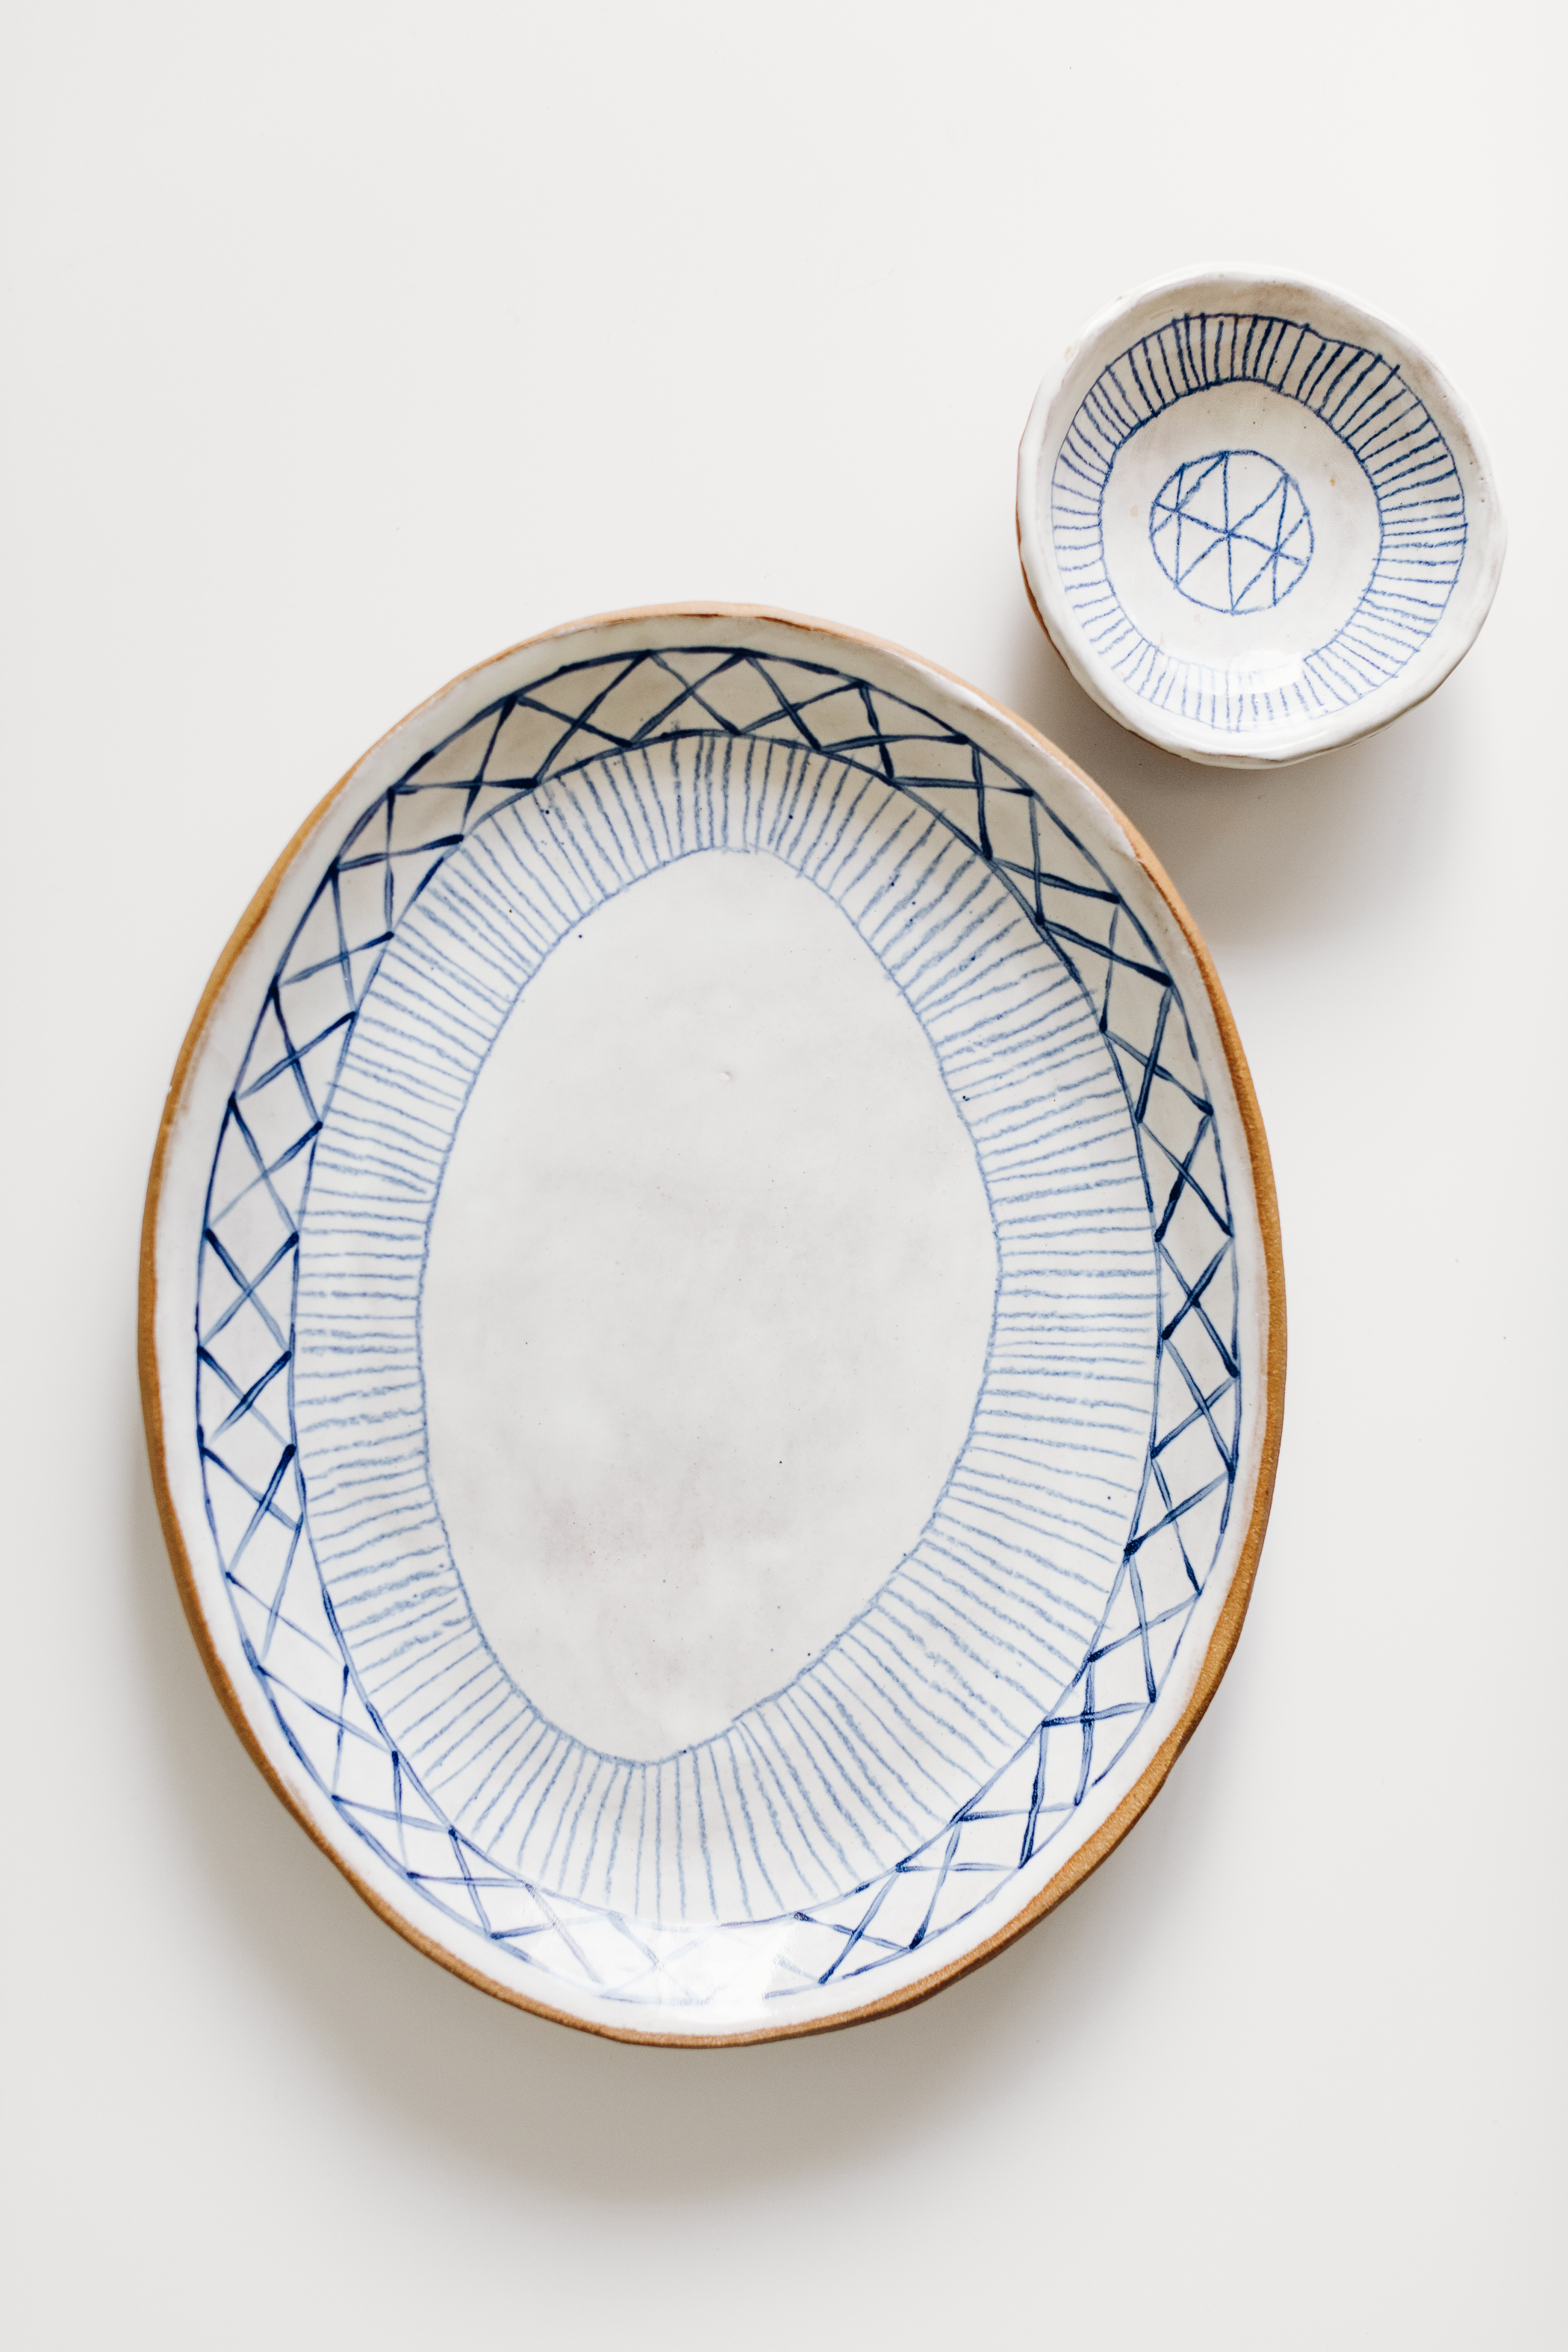 Samantha Ceramics - Samantha shapes her stoneware pieces at her studio in Long Beach, California. She uses organic clay forms and many of her line drawings to decorate her work, I love these pieces.Pictured here is a small 'journey dish' and platter.View her site her.